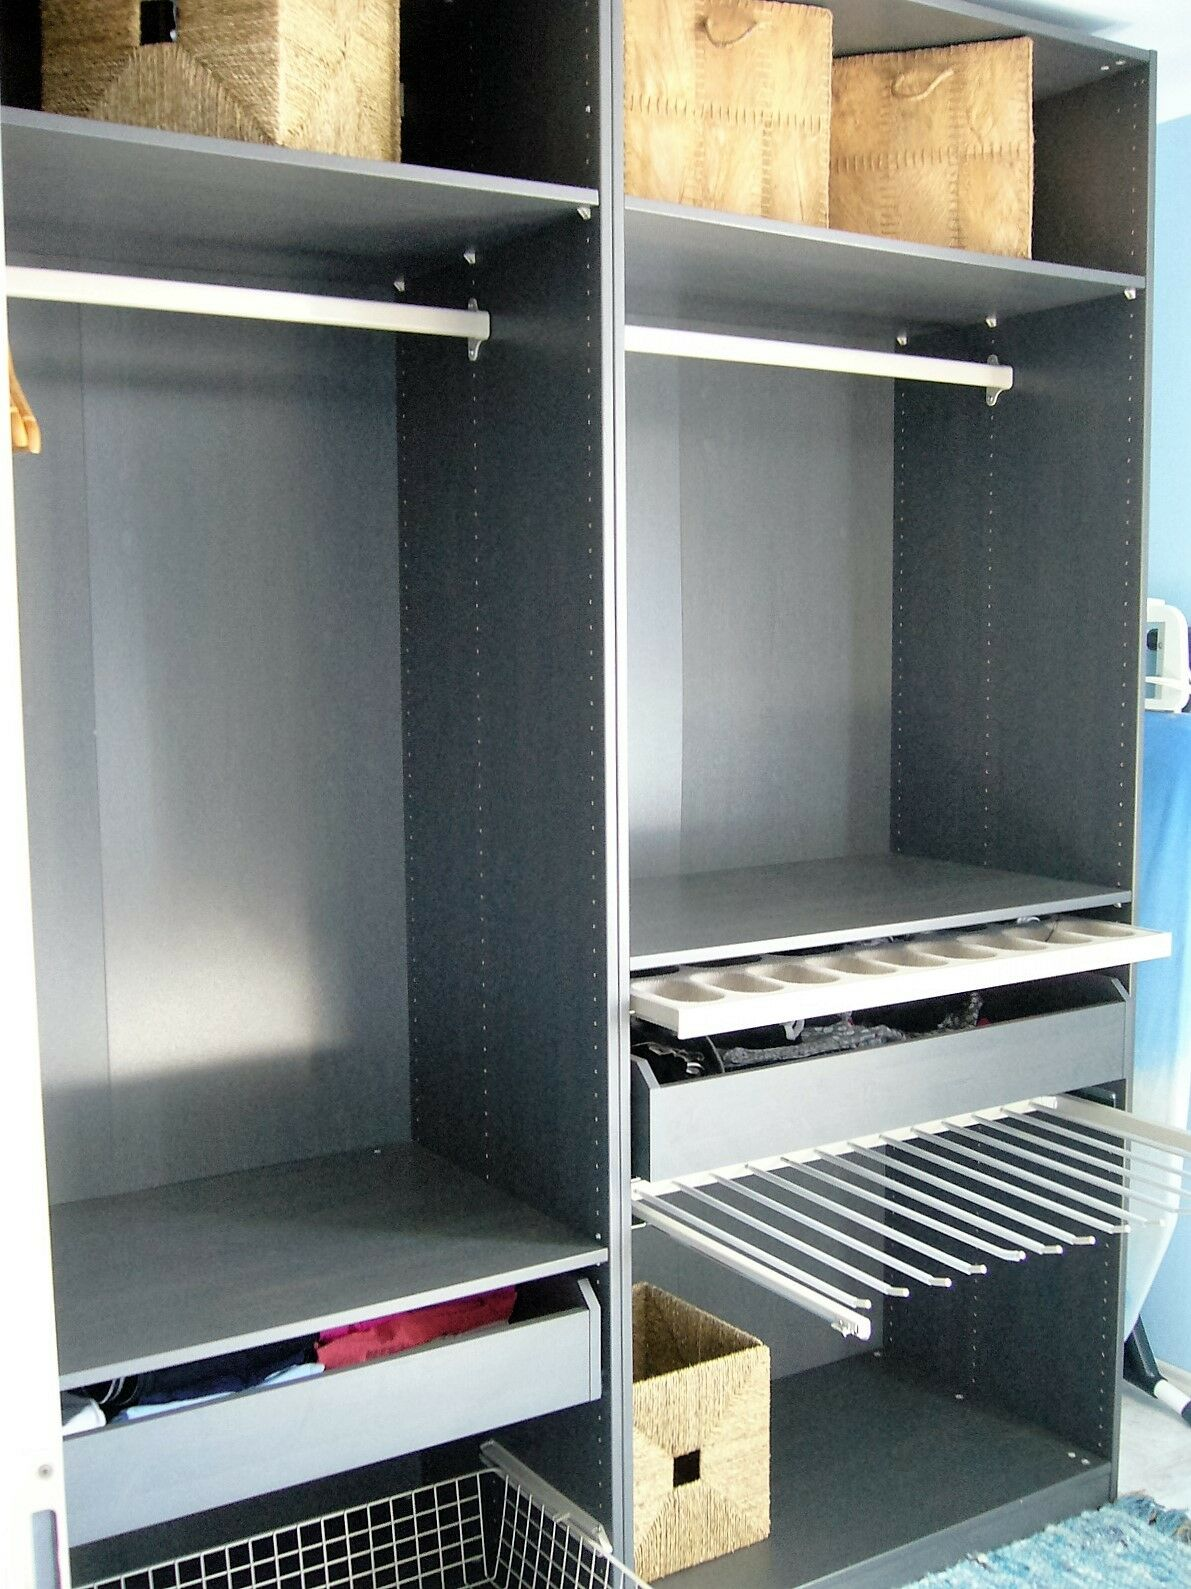 ikea pax kleiderschrank komplement grau 2 meter breit neupreis 600 eur eur 350 00 picclick de. Black Bedroom Furniture Sets. Home Design Ideas